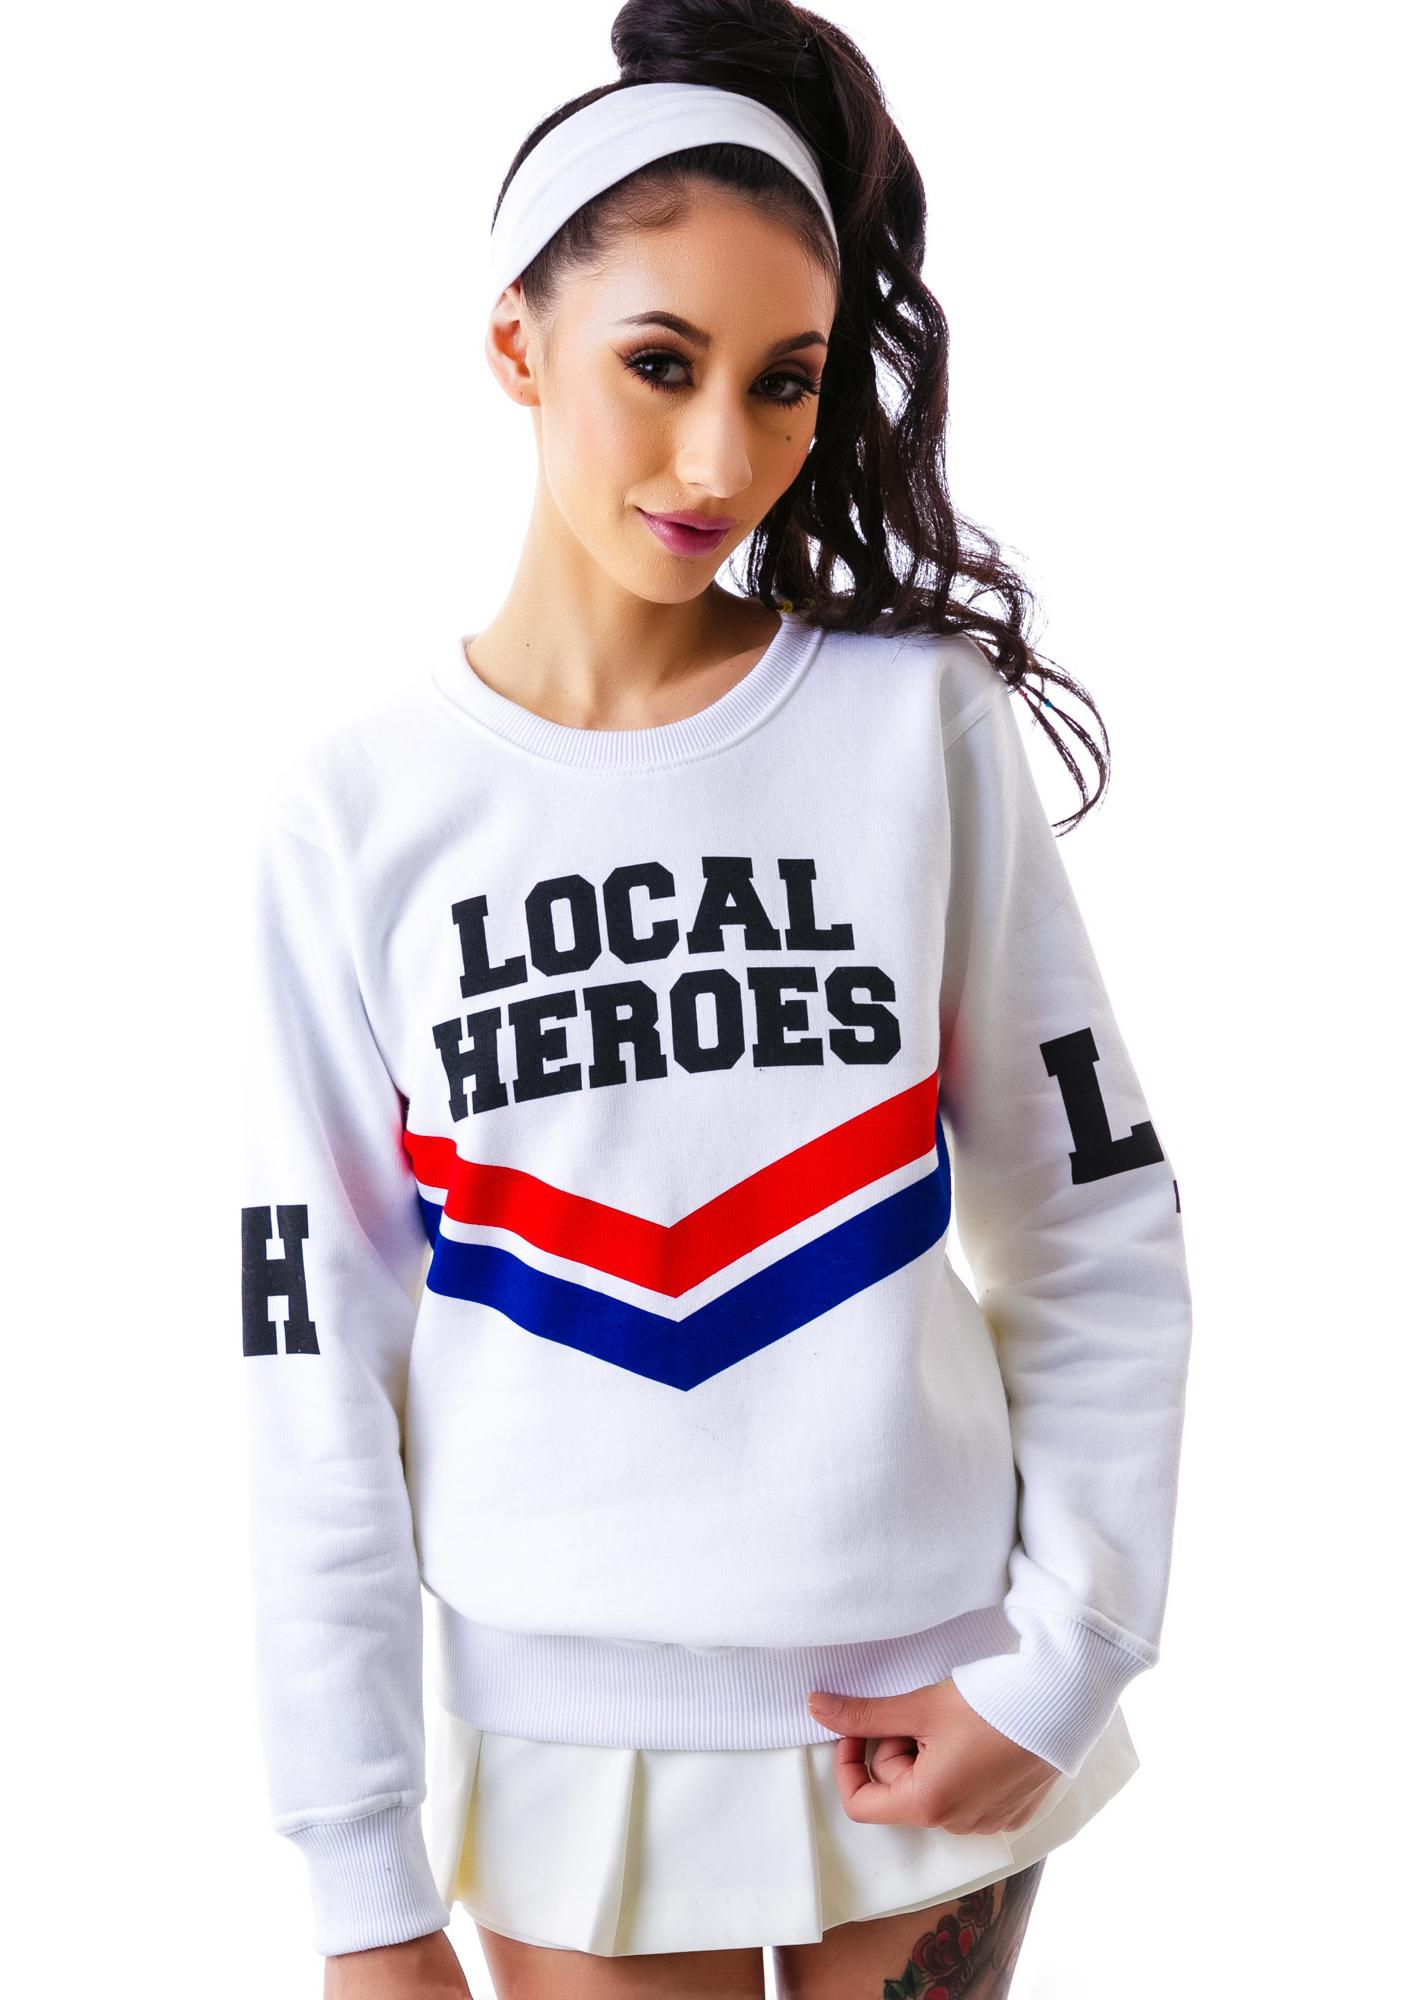 Local Heroes Cheerleader Sweatshirt